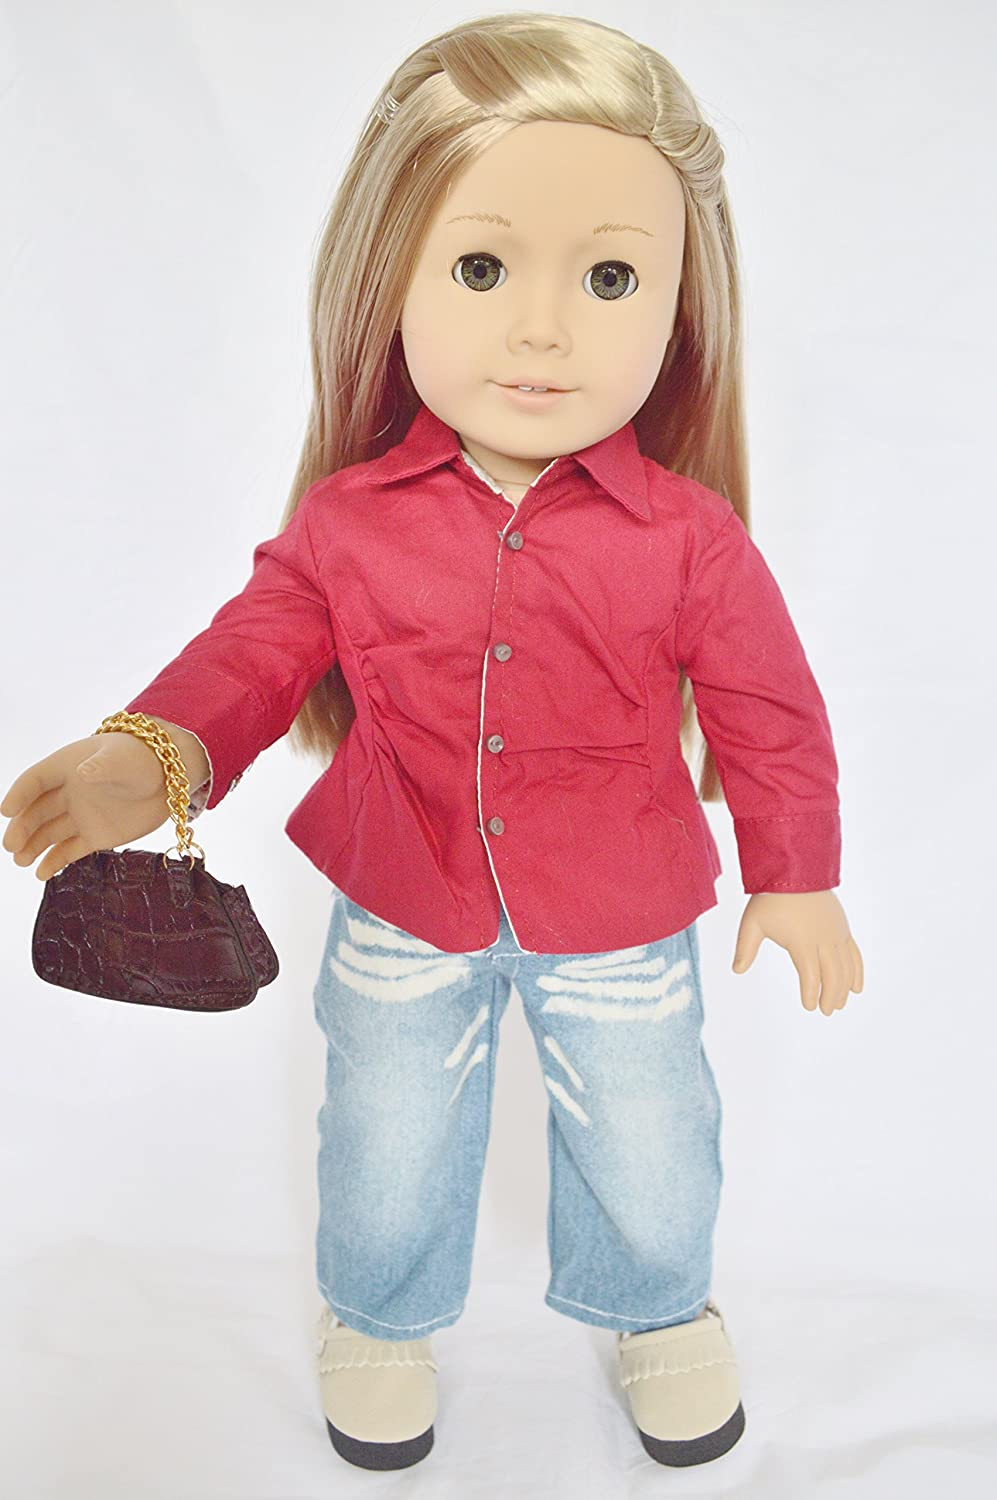 CASUAL OUTFIT WITH PURSE AND SHOES FOR AMERICAN GIRL DOLLS AND MAPLELEA DollsHobbiesNmore